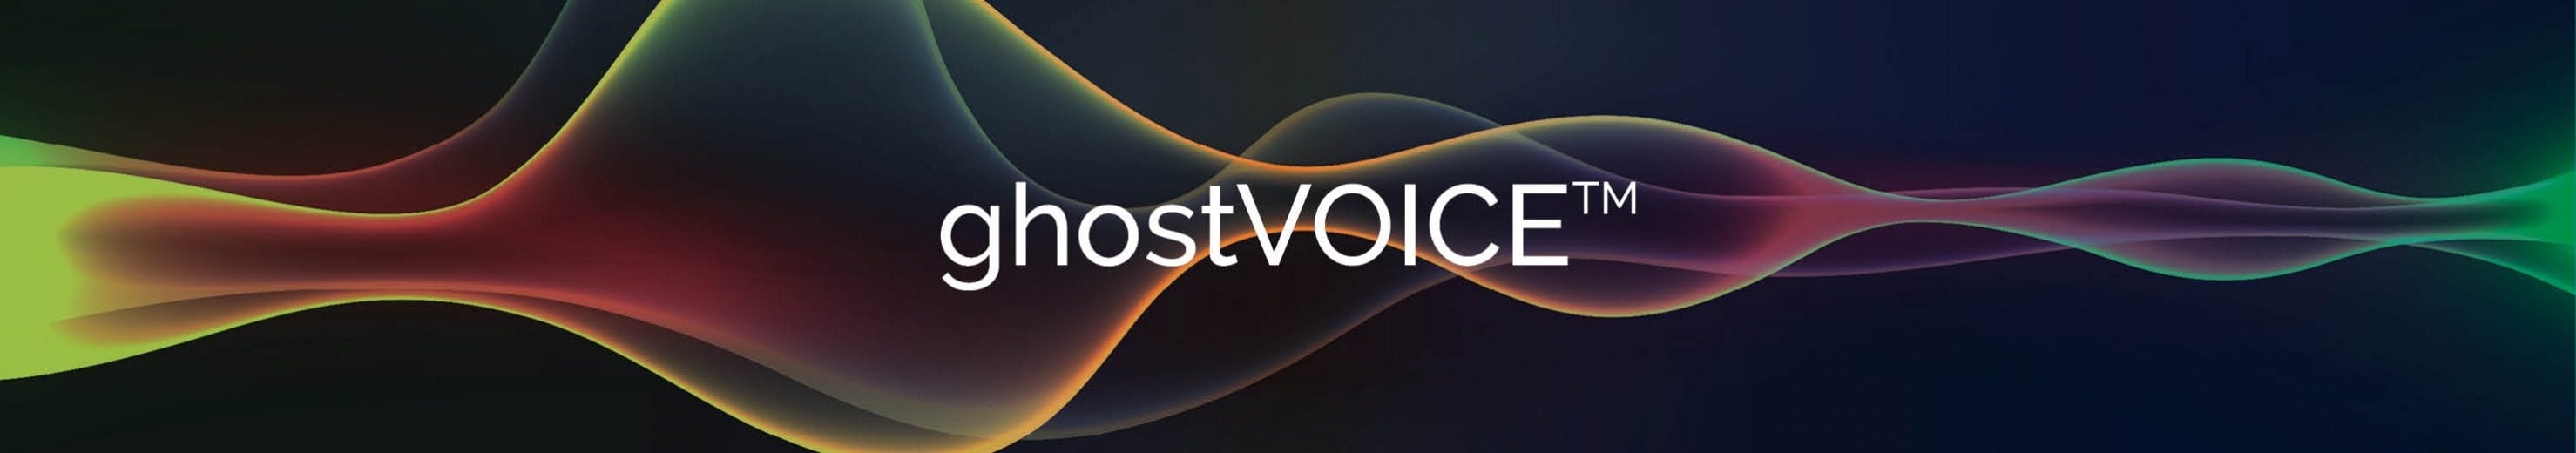 EF_Website_SolutionsHeaders_2019_ghostvoice